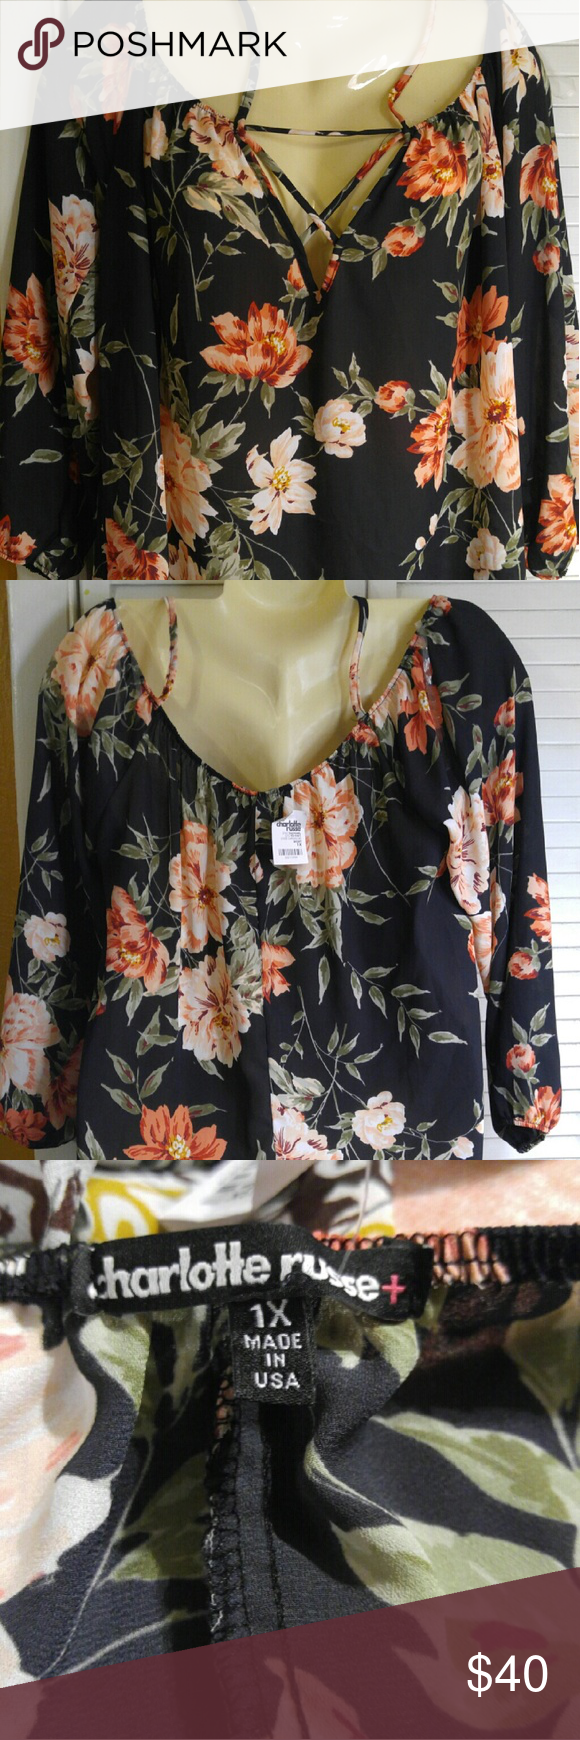 New With Tags Charlotte Russe Floral Blouse Beautiful Floral Top by Charlotte Russe.  Drawstring front that moves up shoulder and acts as shoulder straps.  Sleeves are 3/4 length with elastic around sleeves.  Shirt hem is rounded. Charlotte Russe Tops Blouses